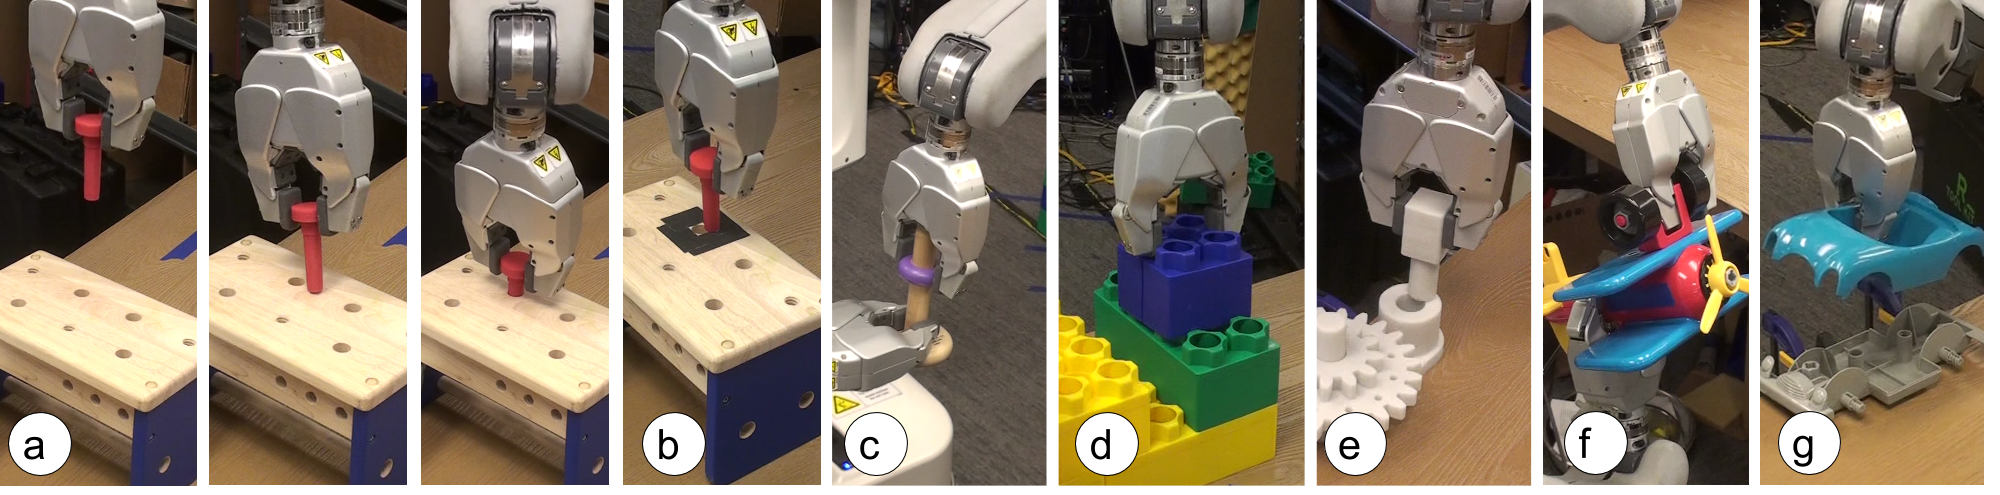 Tasks used in our evaluation: (a) inserting a toy nail into a toolbench, (b) inserting the nail with a high-friction surface to increase difficulty, (c) placing a wooden ring on a tight-fitting peg, (d) stacking toy blocks, (e) putting together part of a gear assembly, (f) assembling a toy airplane and (g) a toy car.